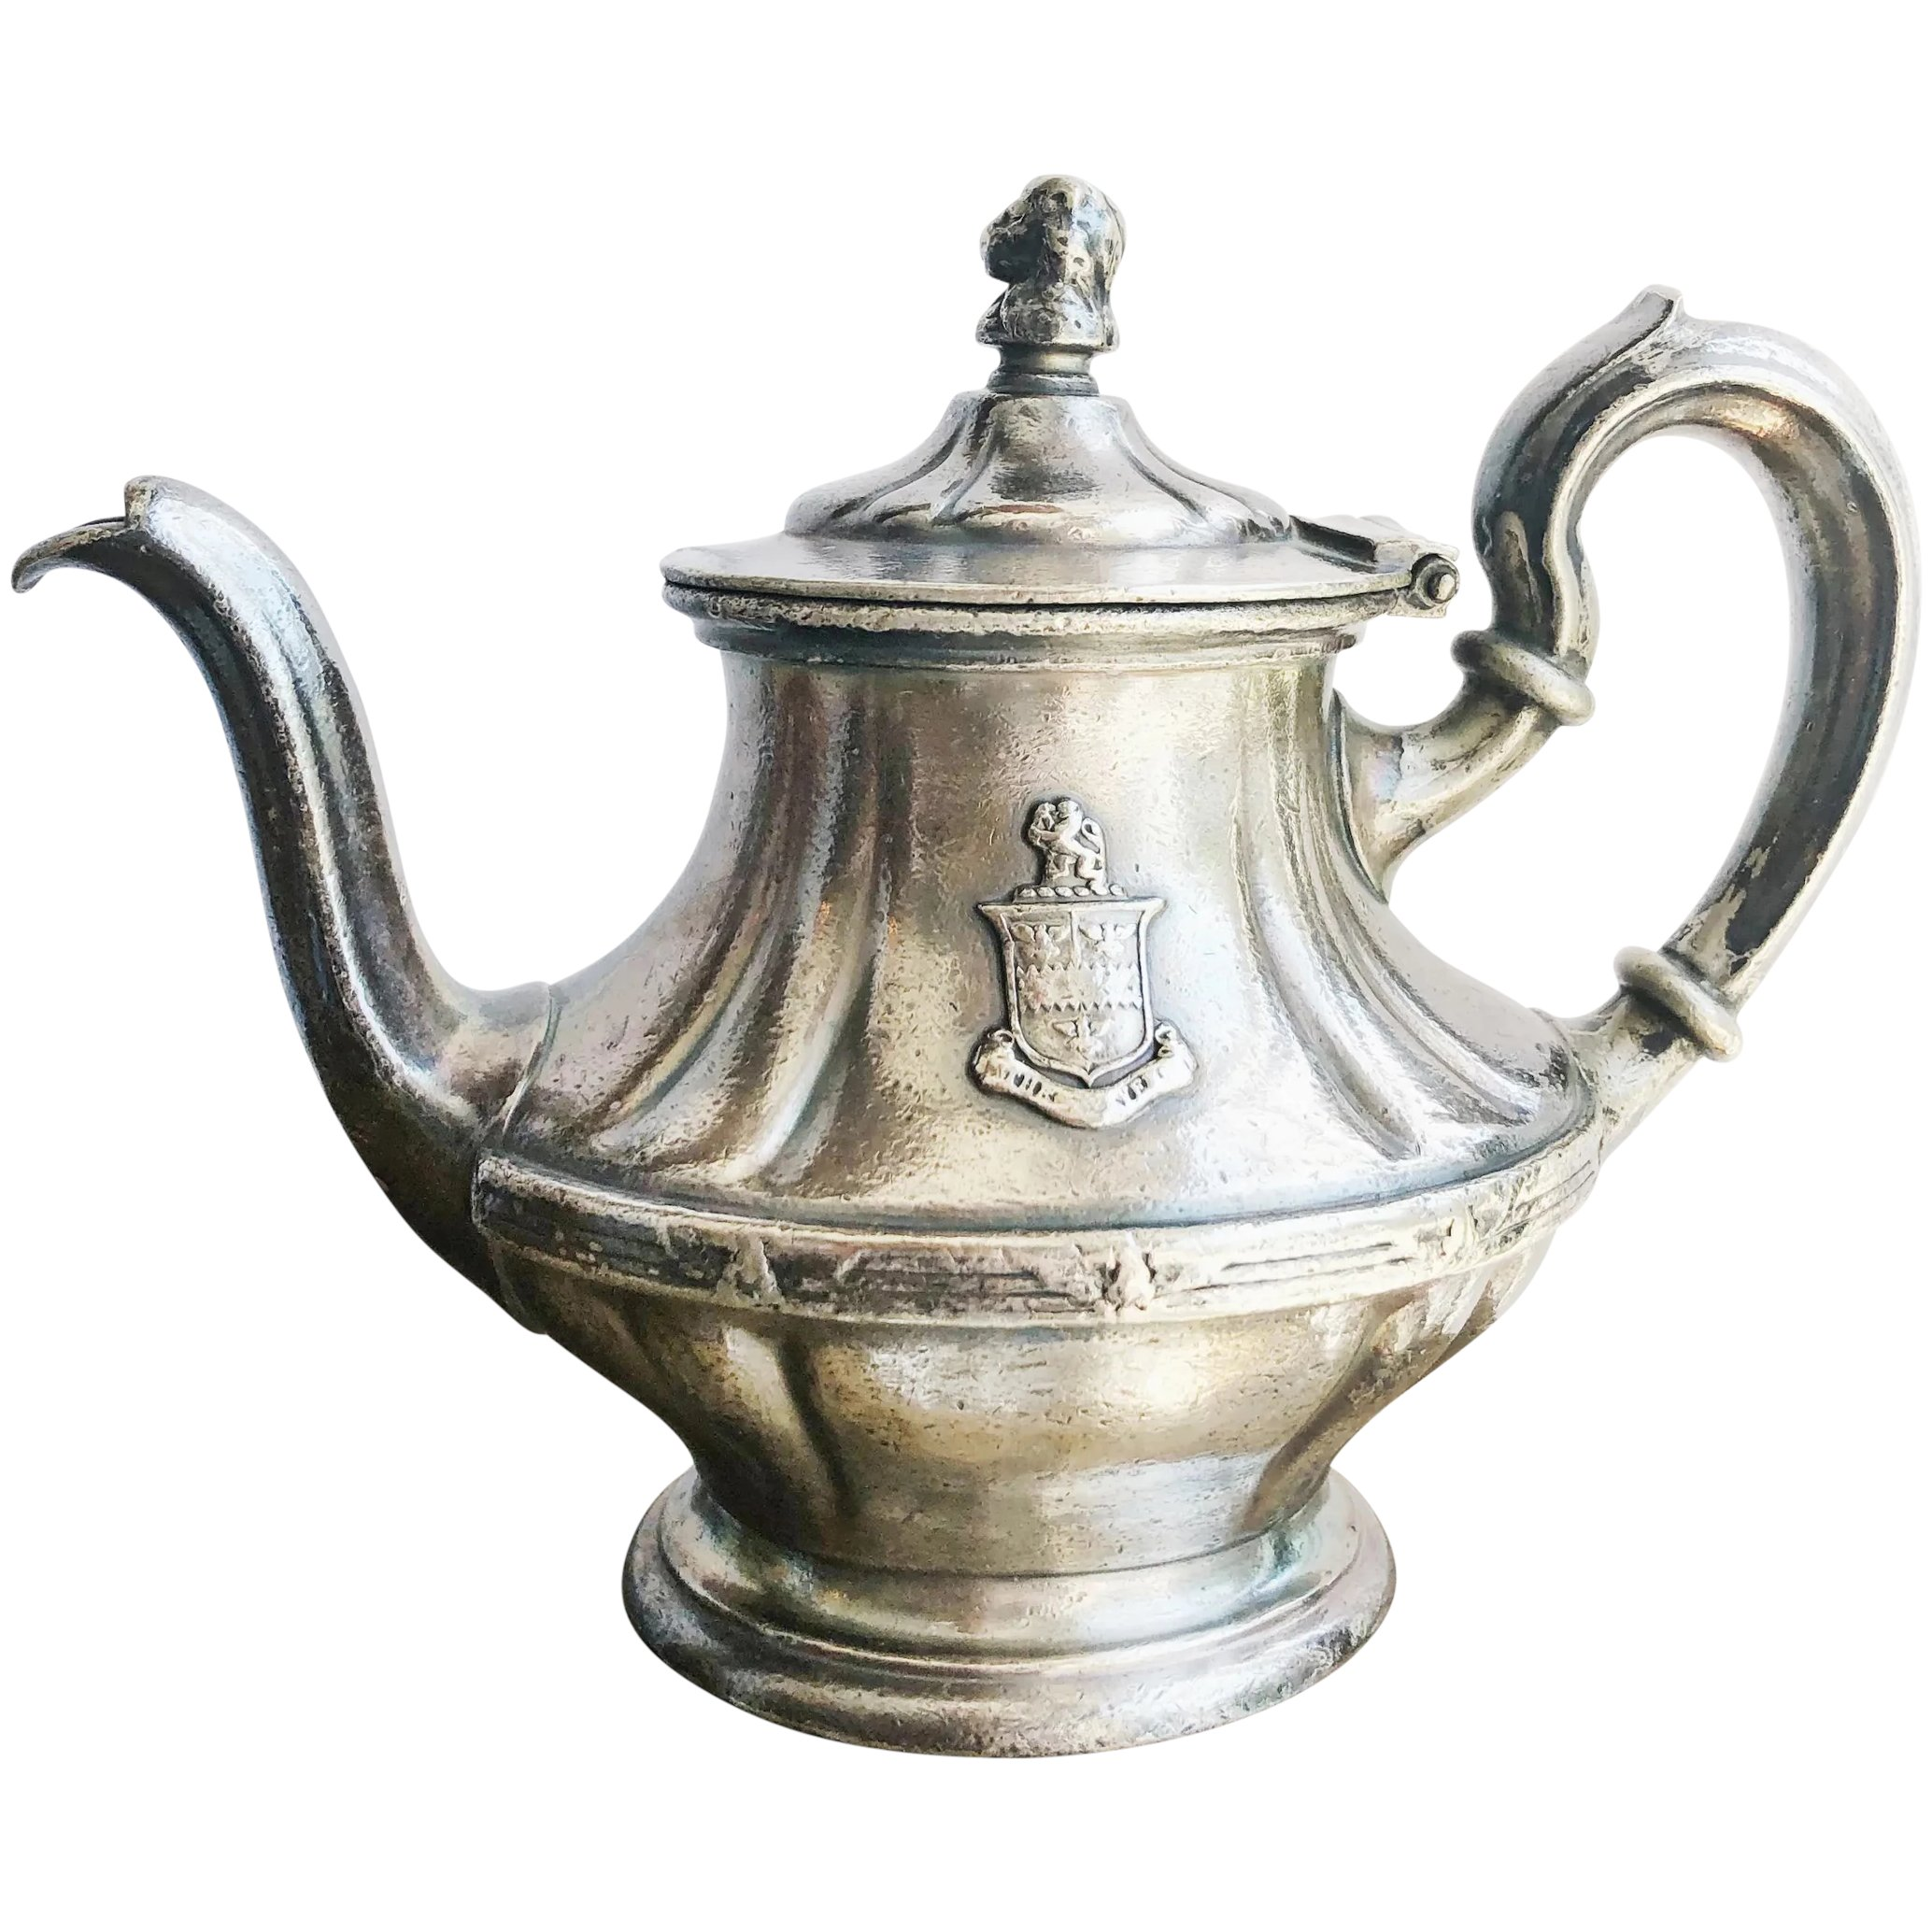 Antique Silver Plated Teapot From The